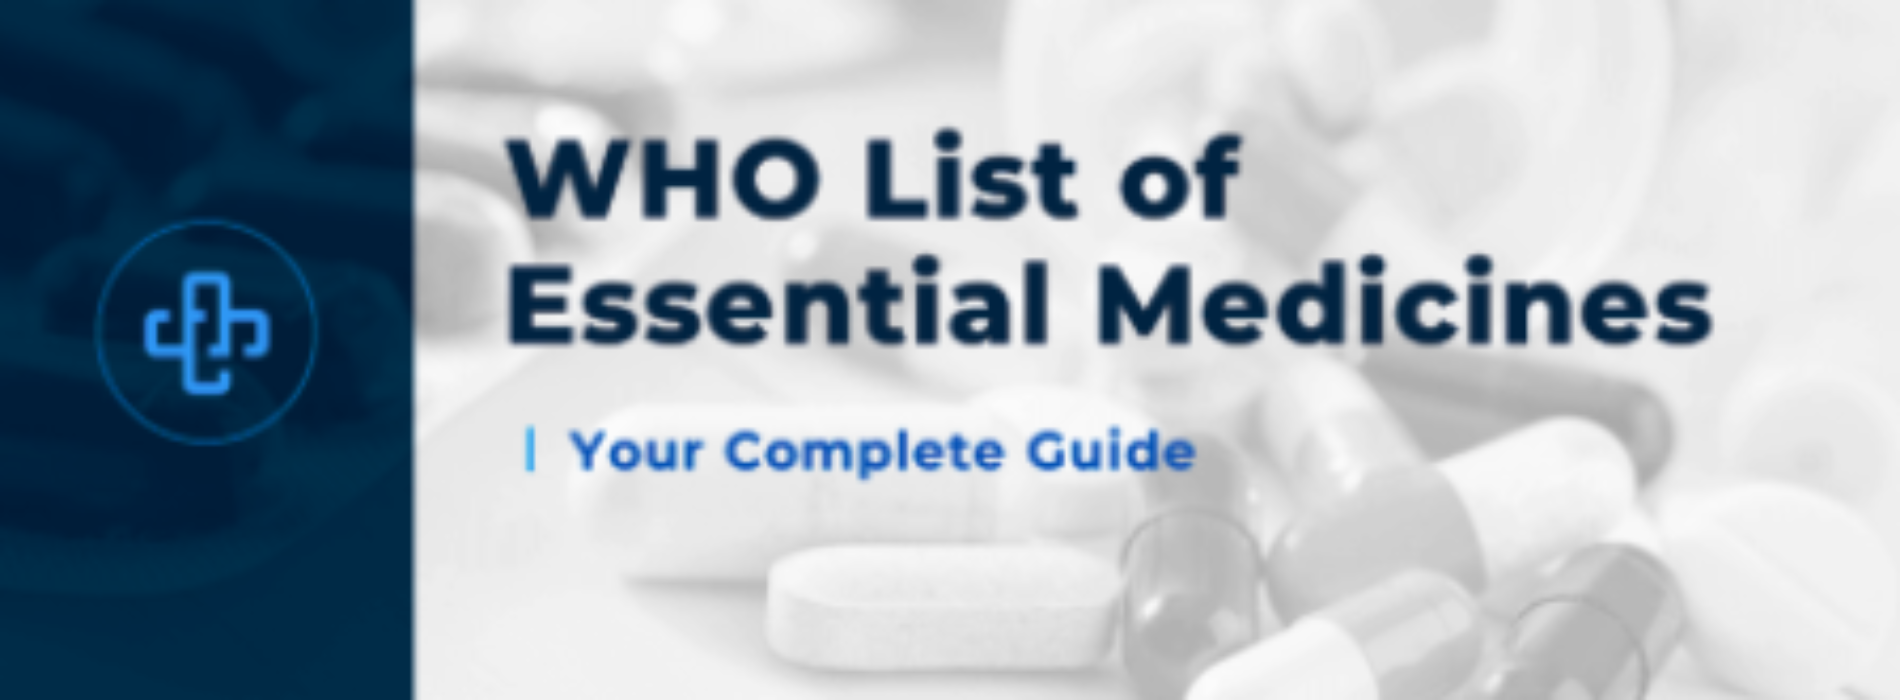 WHO prioritizes access to diabetes, cancer treatments in new Essential Medicines Lists